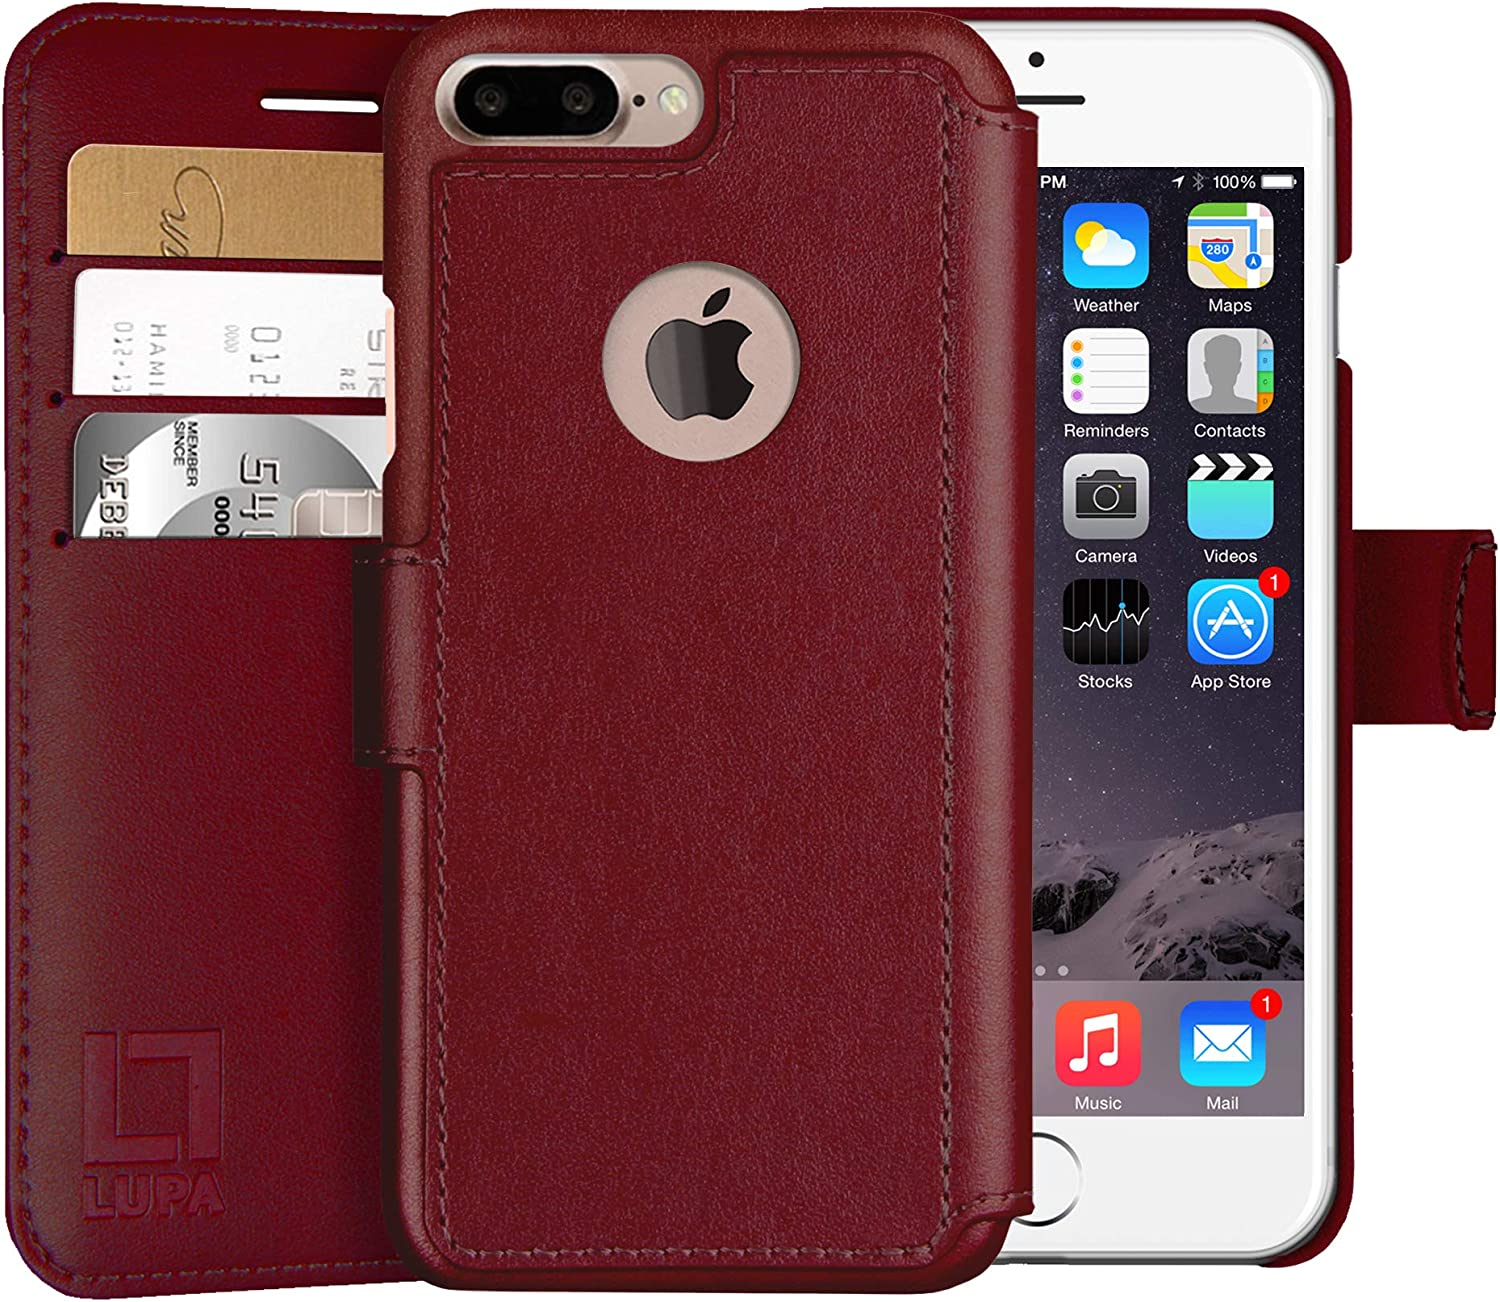 LUPA Wallet Case iPhone 8 Plus, Durable and Slim, Lightweight with Magnetic Closure, iPhone 8 Plus Case with Card Holder, Faux Leather, Burgundy (5.5 Inch Screen)